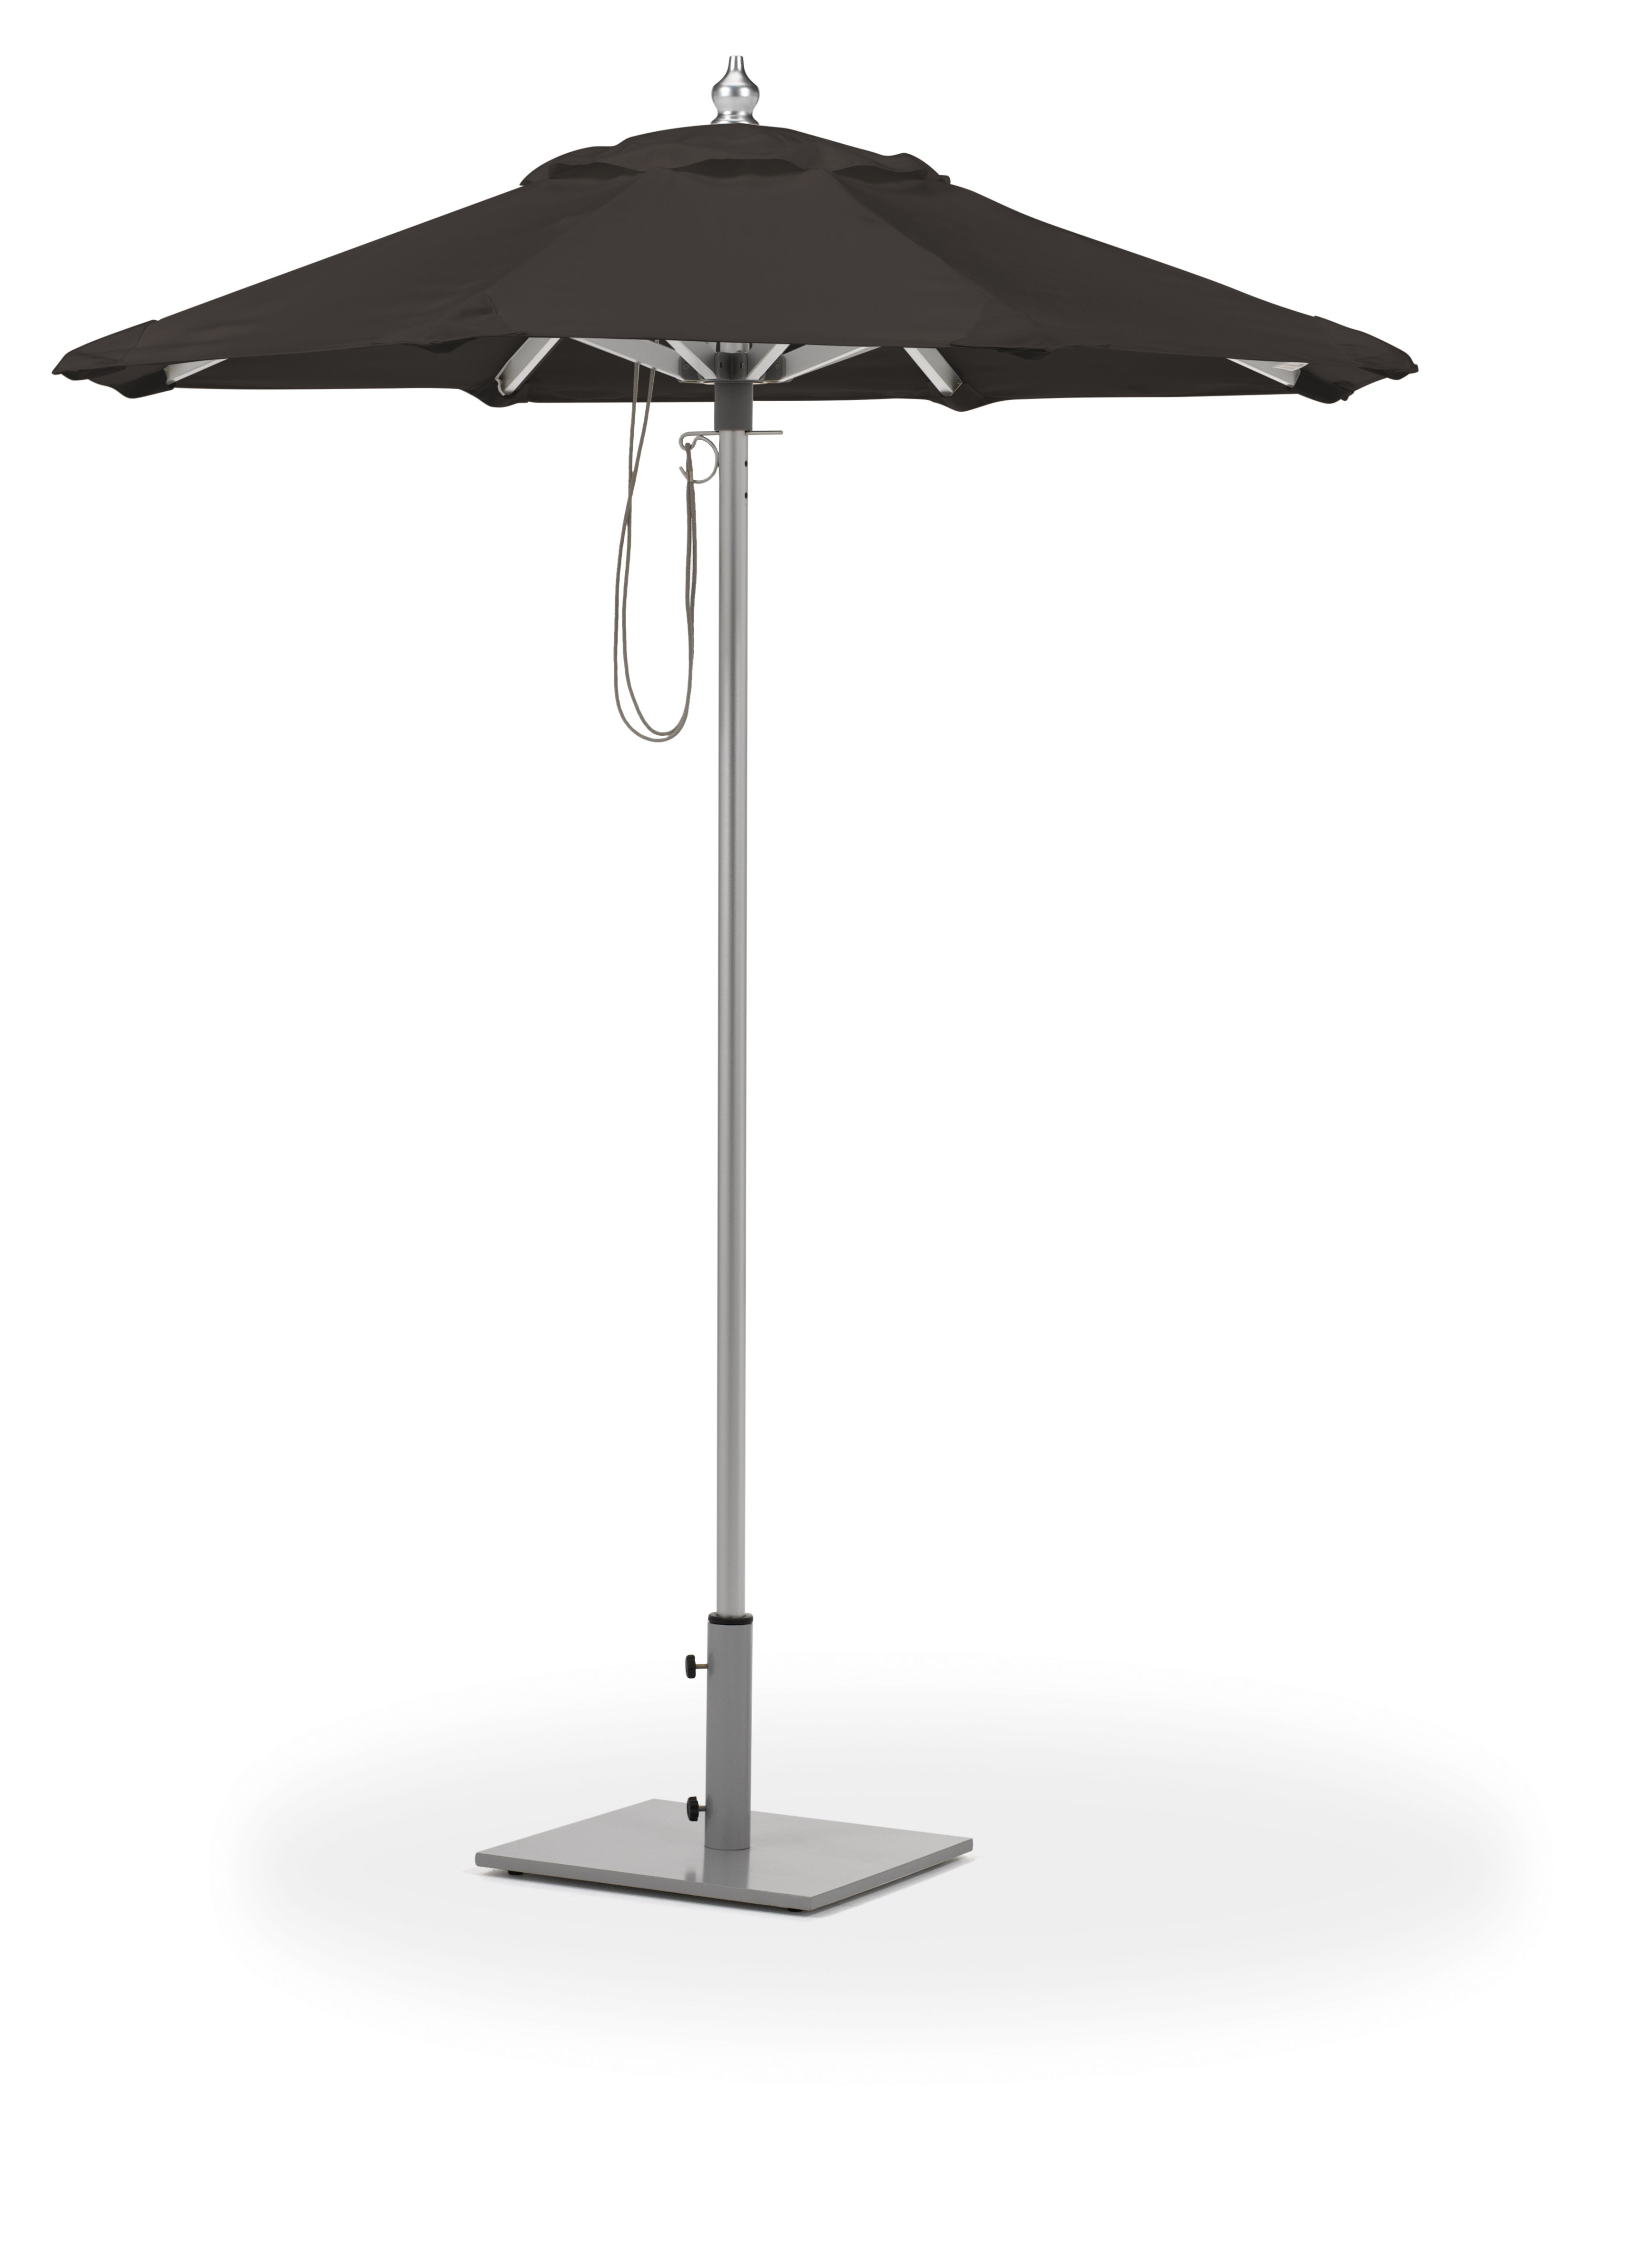 Newest Stambaugh 6' Market Umbrella Pertaining To Caravelle Market Sunbrella Umbrellas (View 20 of 20)